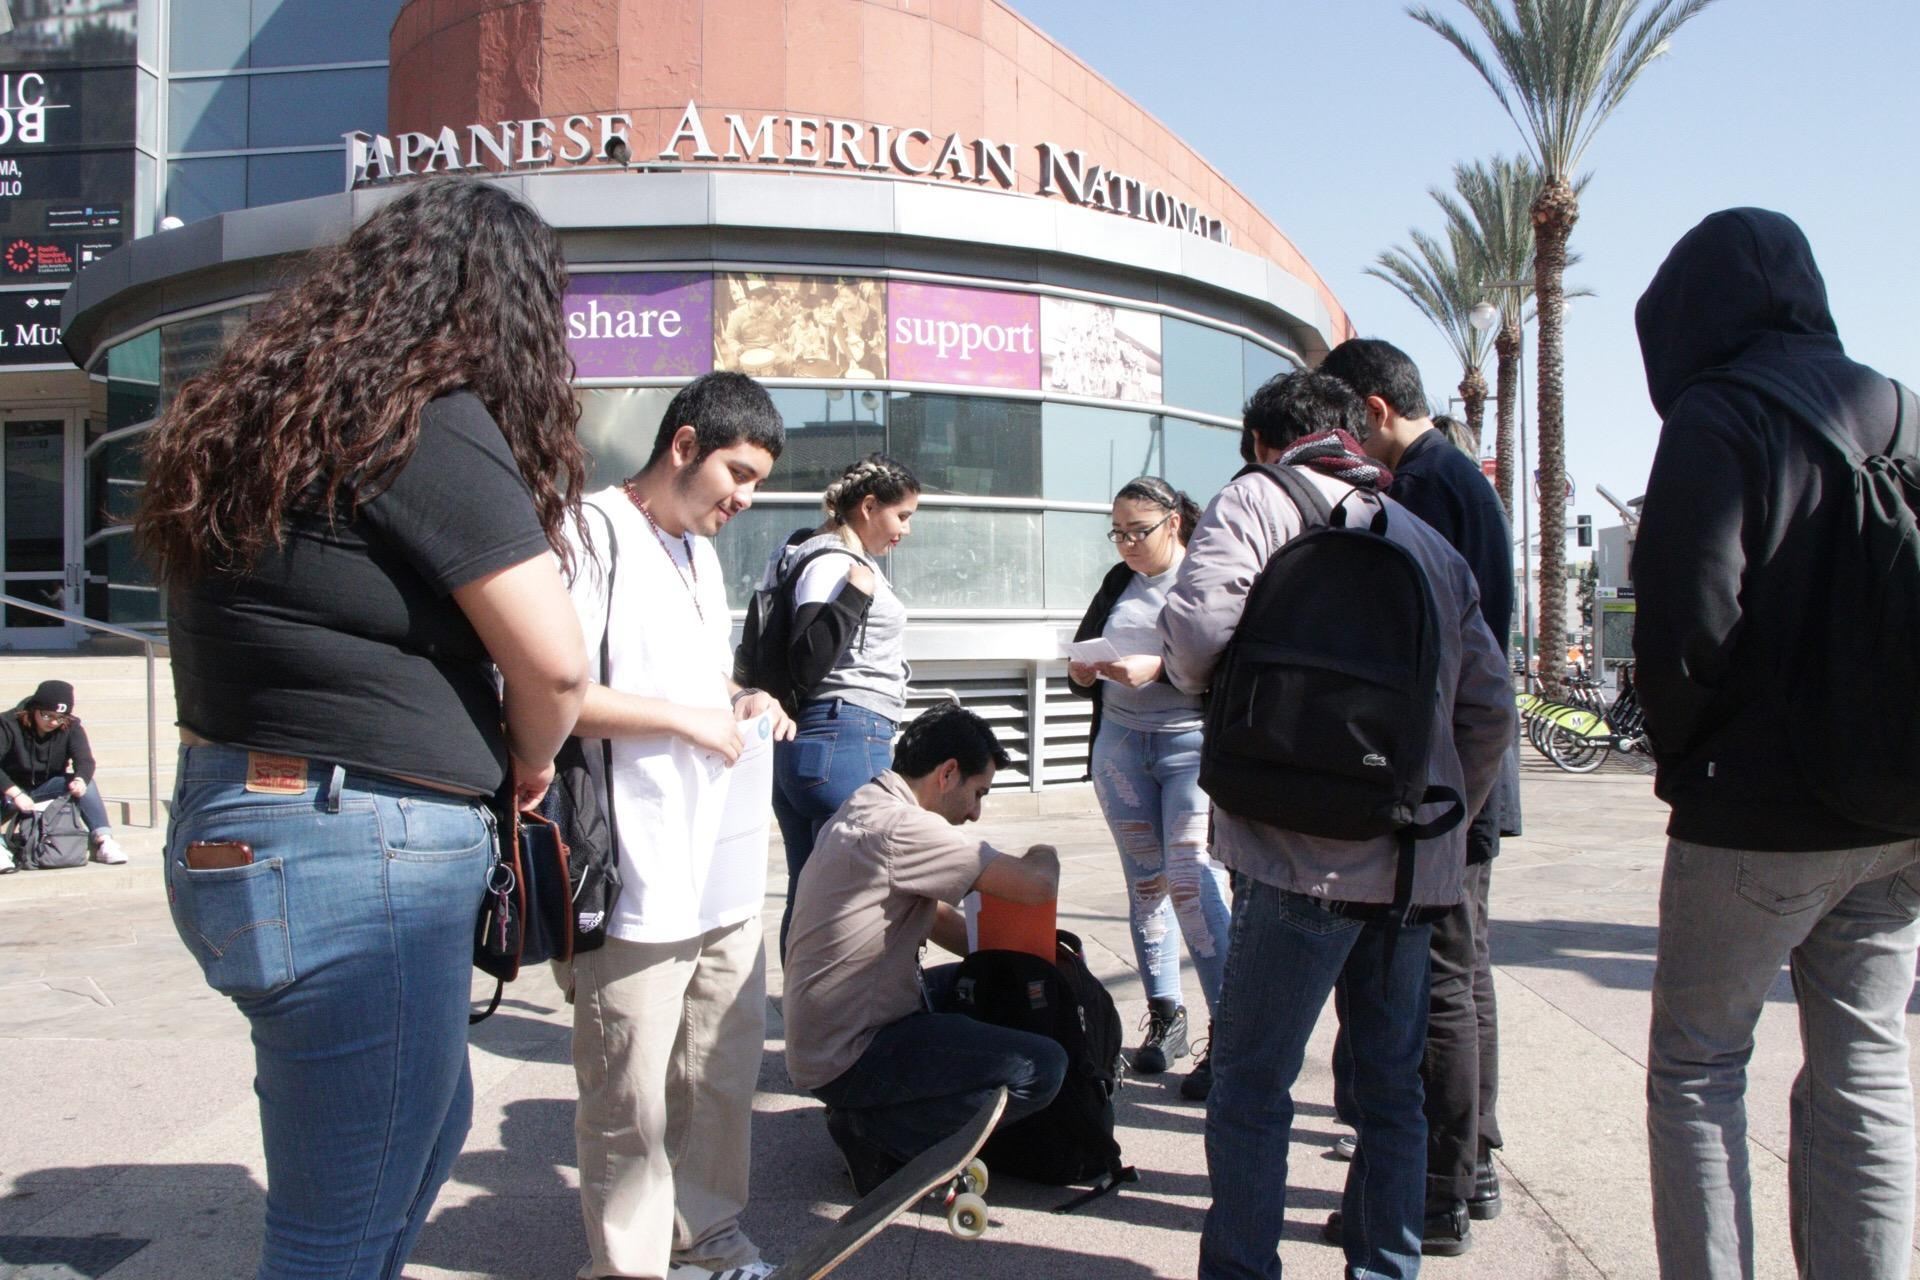 LA CAUSA students at Japanese American Museum